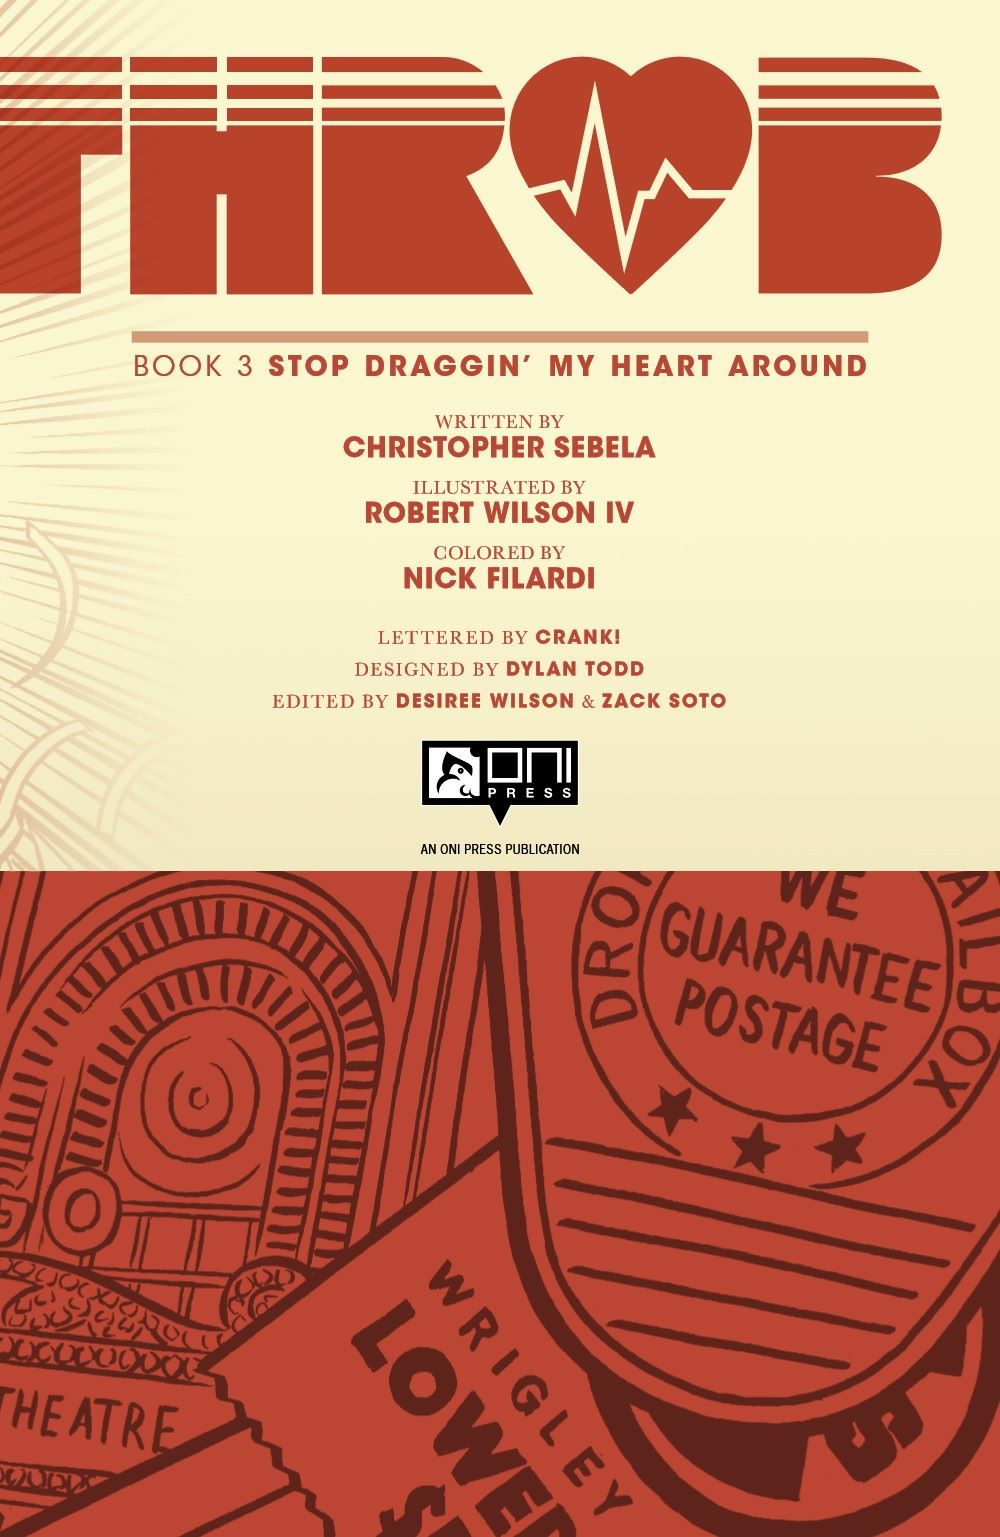 HEARTTHROBV3-REFERENCE-004 ComicList Previews: HEARTTHROB VOLUME 3 STOP DRAGGIN' MY HEART AROUND TP